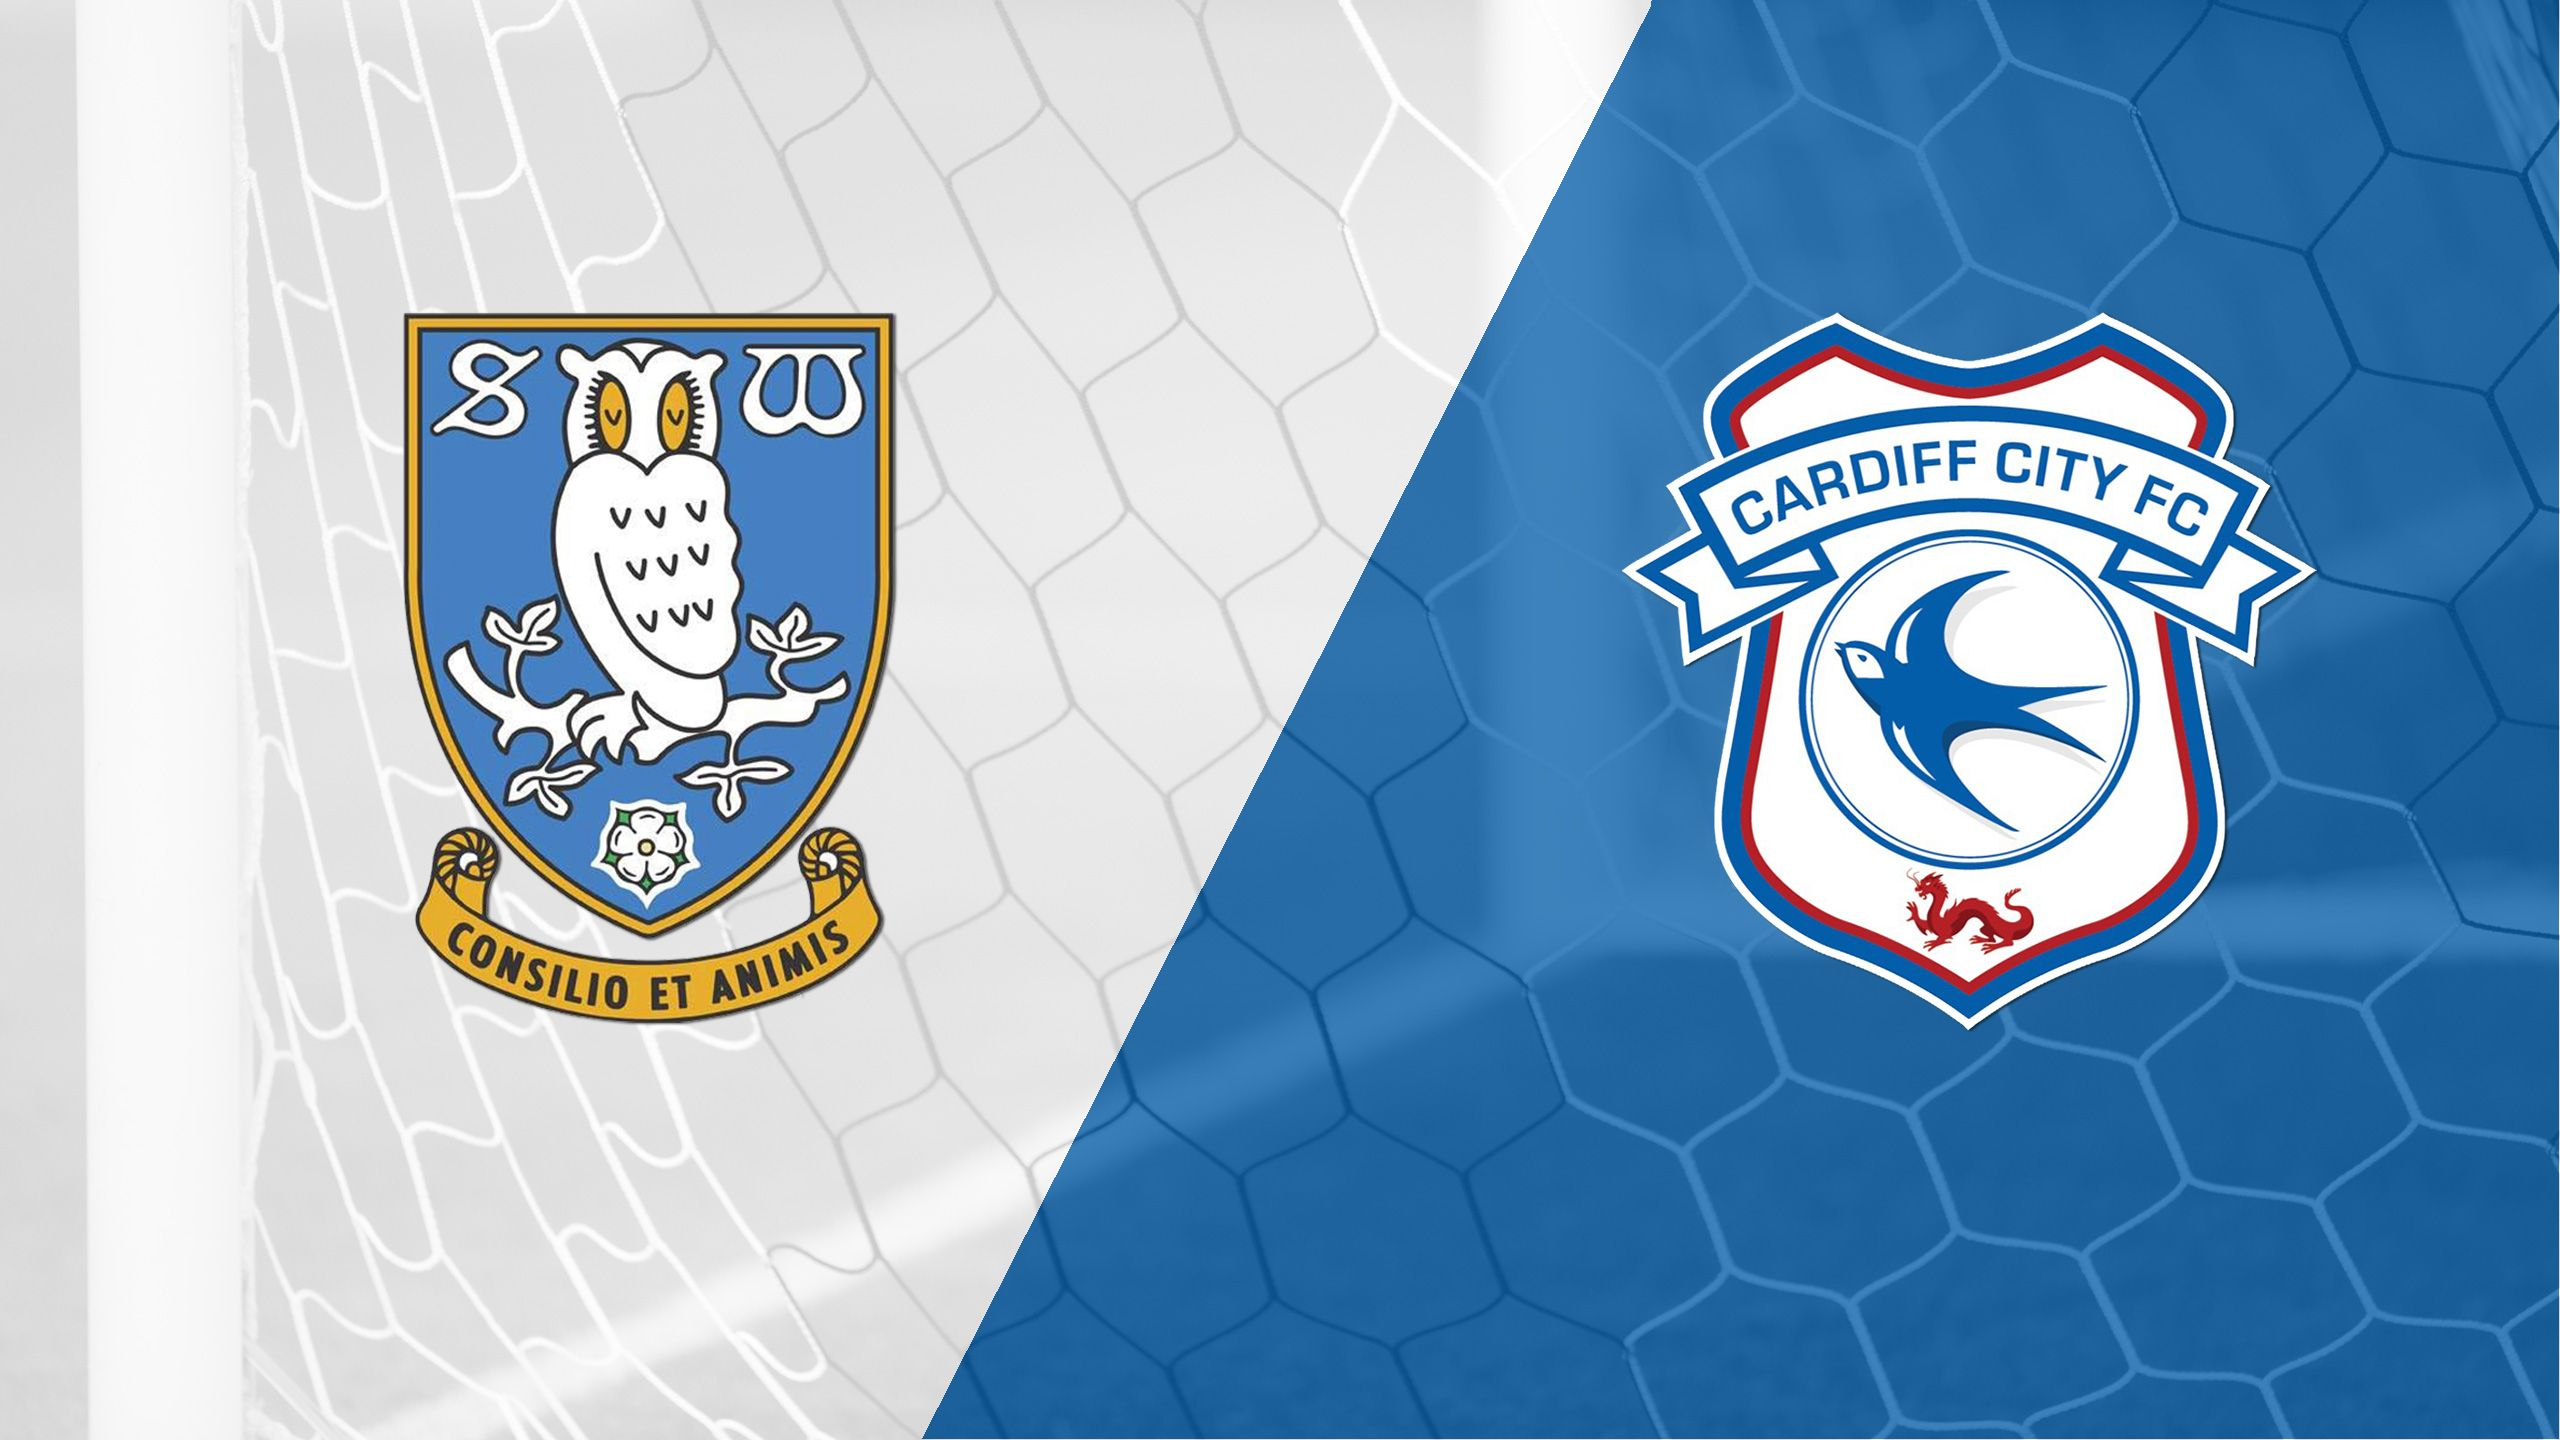 Sheffield Wednesday vs. Cardiff City (English League Championship)